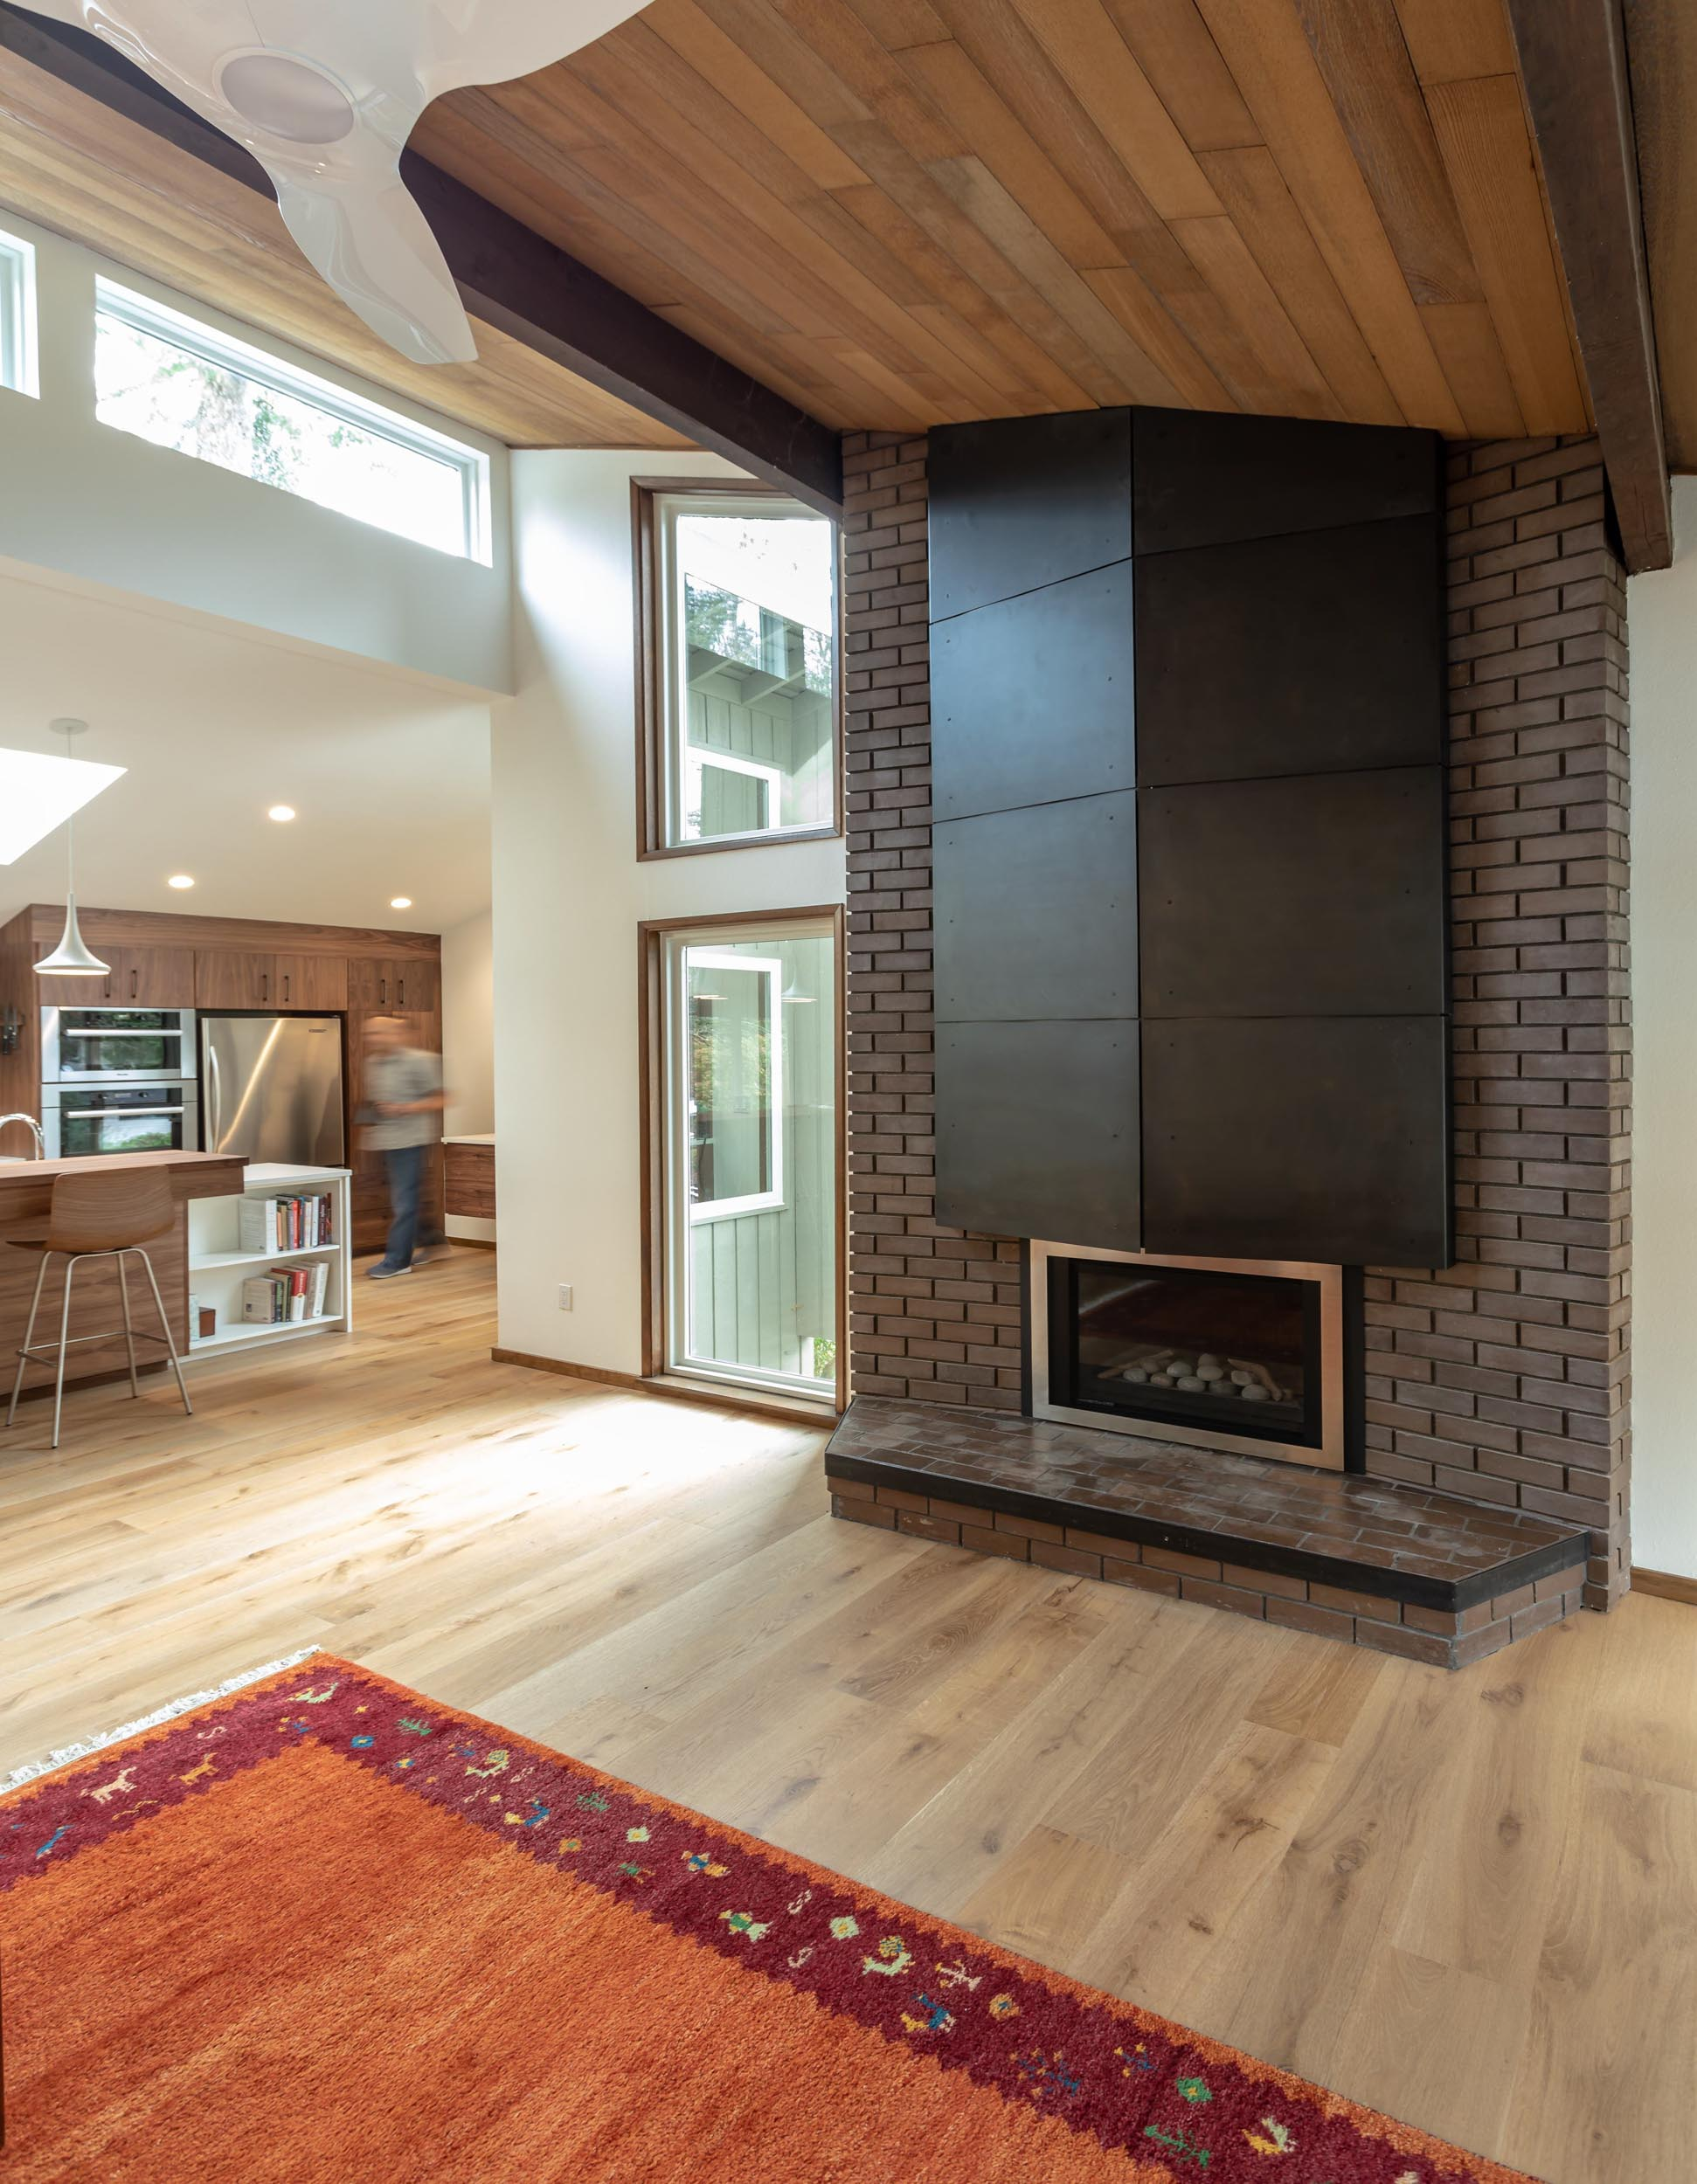 """The original hearth was covered with wood shingles, something the owners were not excited about. They were looking for a contemporary upgrade. We worked together with a steel fabricator to install 1/8"""" steel panels with a gun metal finish."""